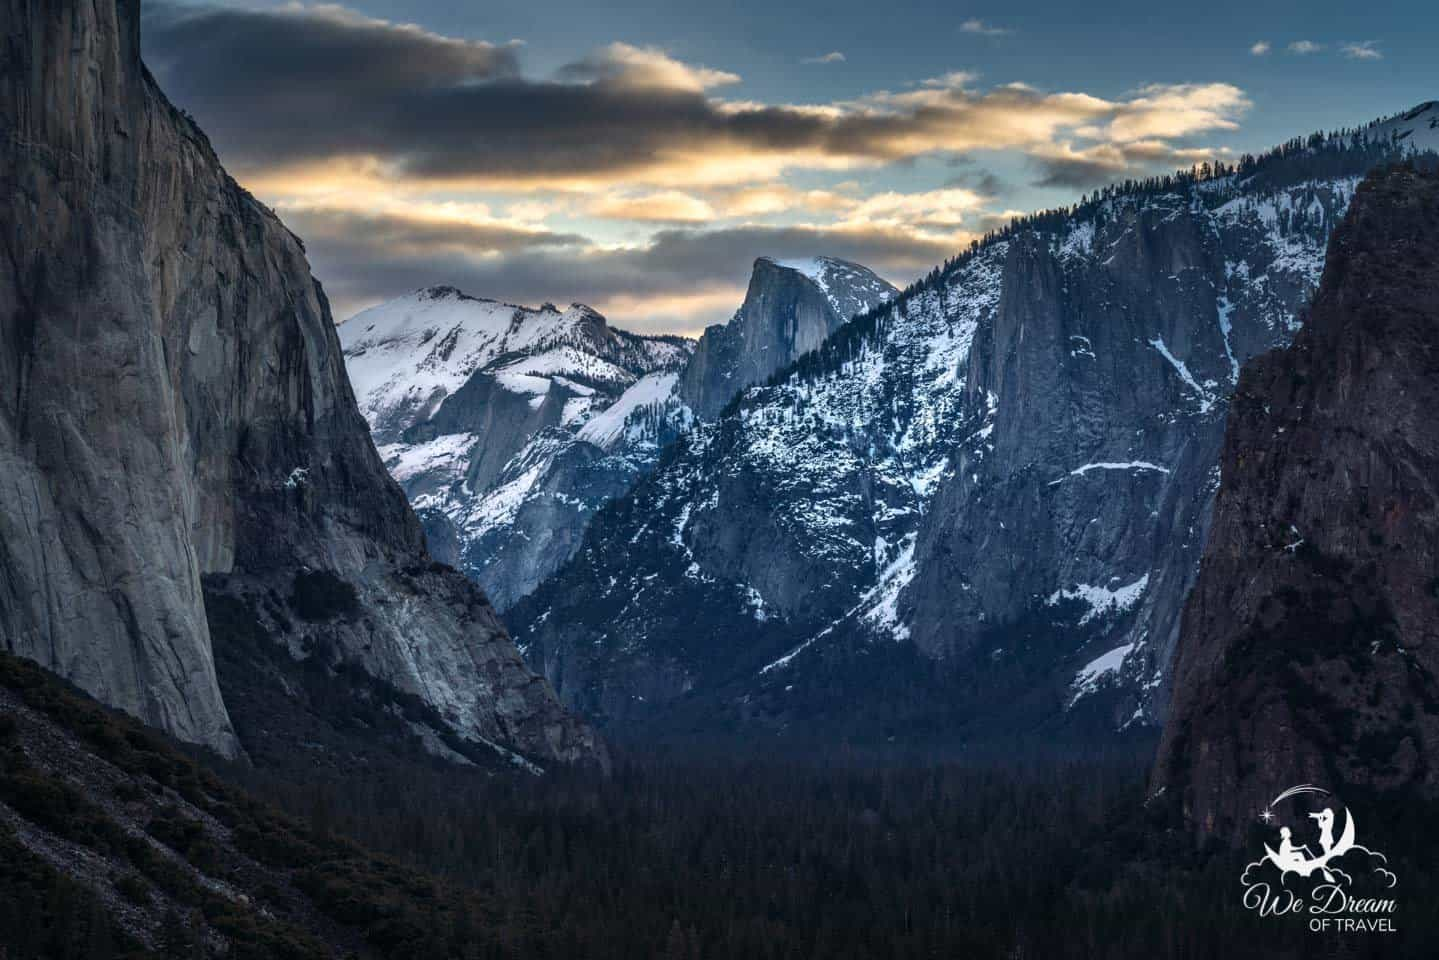 Gold-tinted clouds frame Half Dome at sunrise.